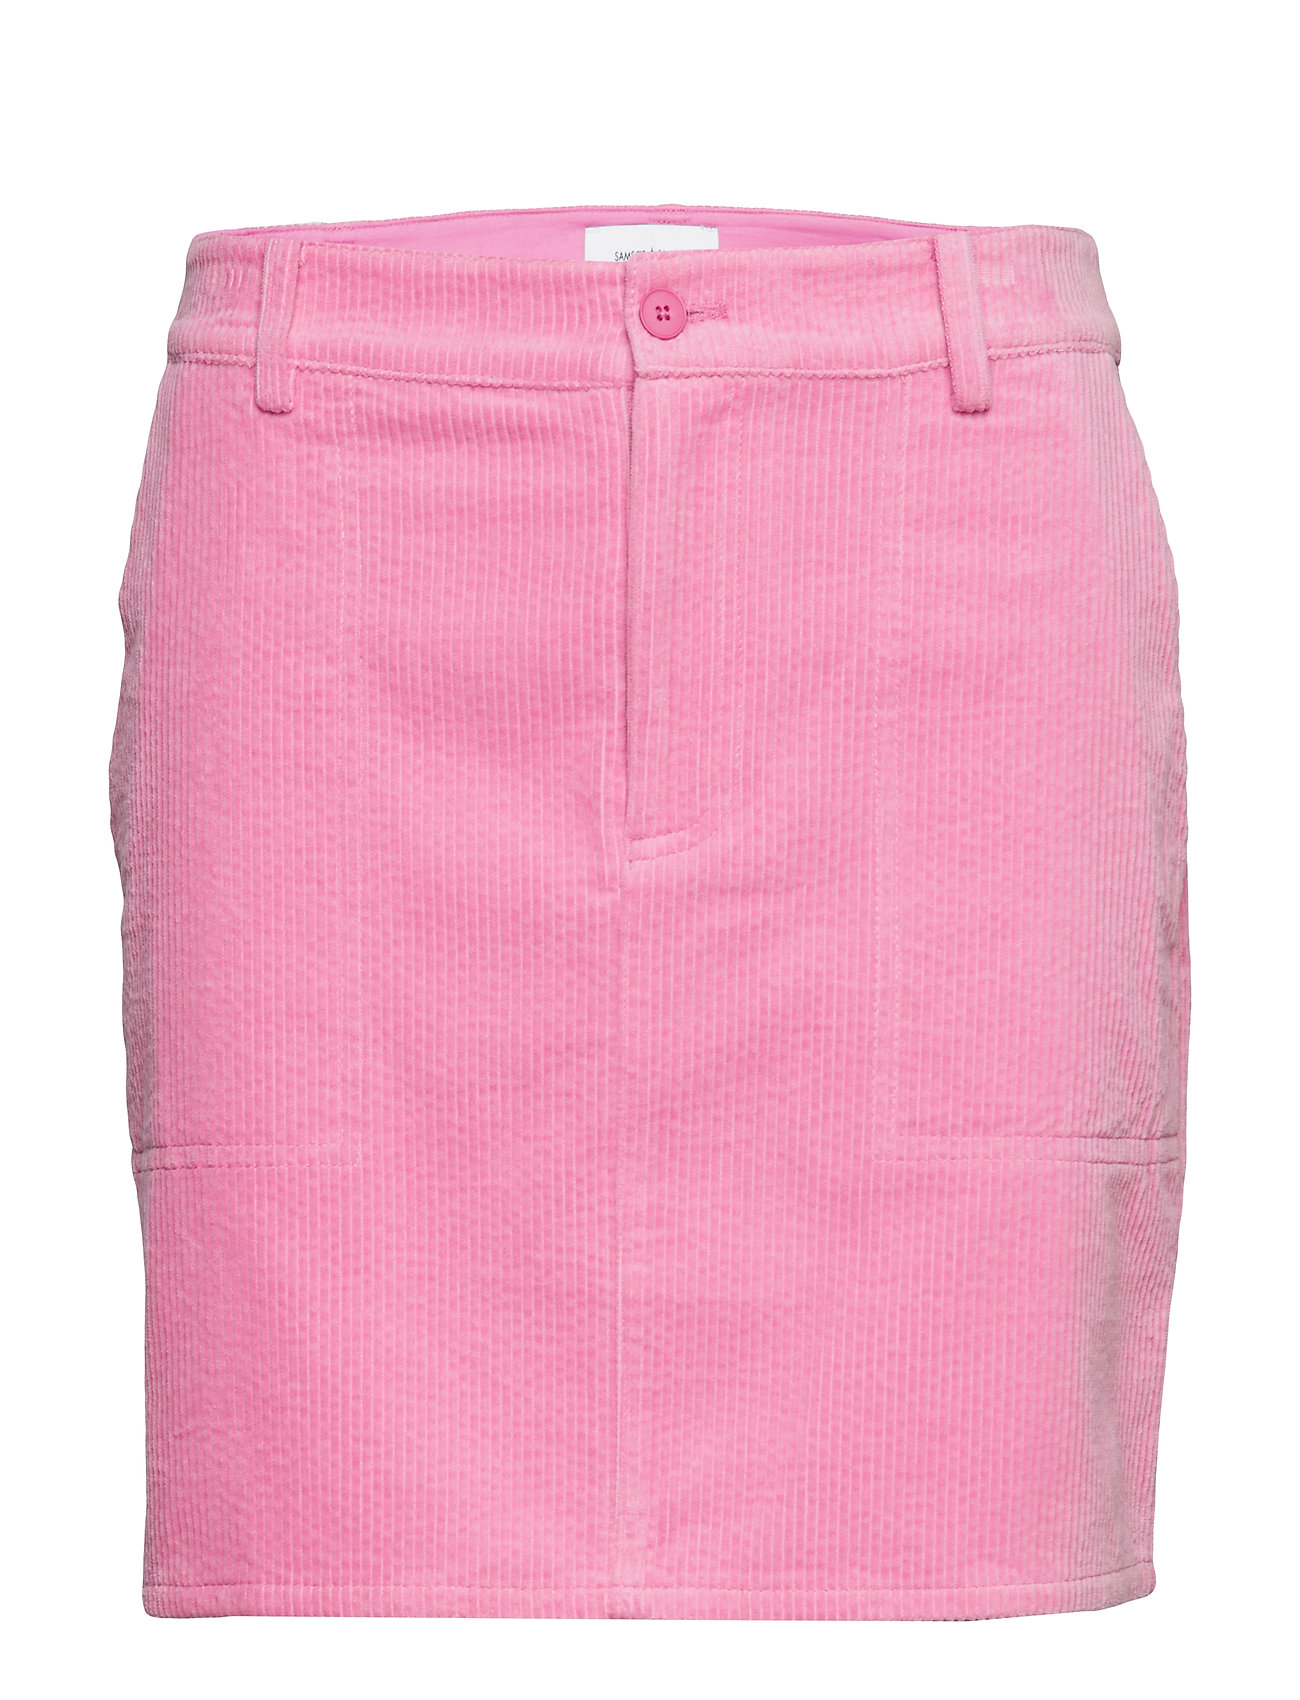 Samsøe & Samsøe Kelly skirt 11153 - BUBBLE GUM PINK